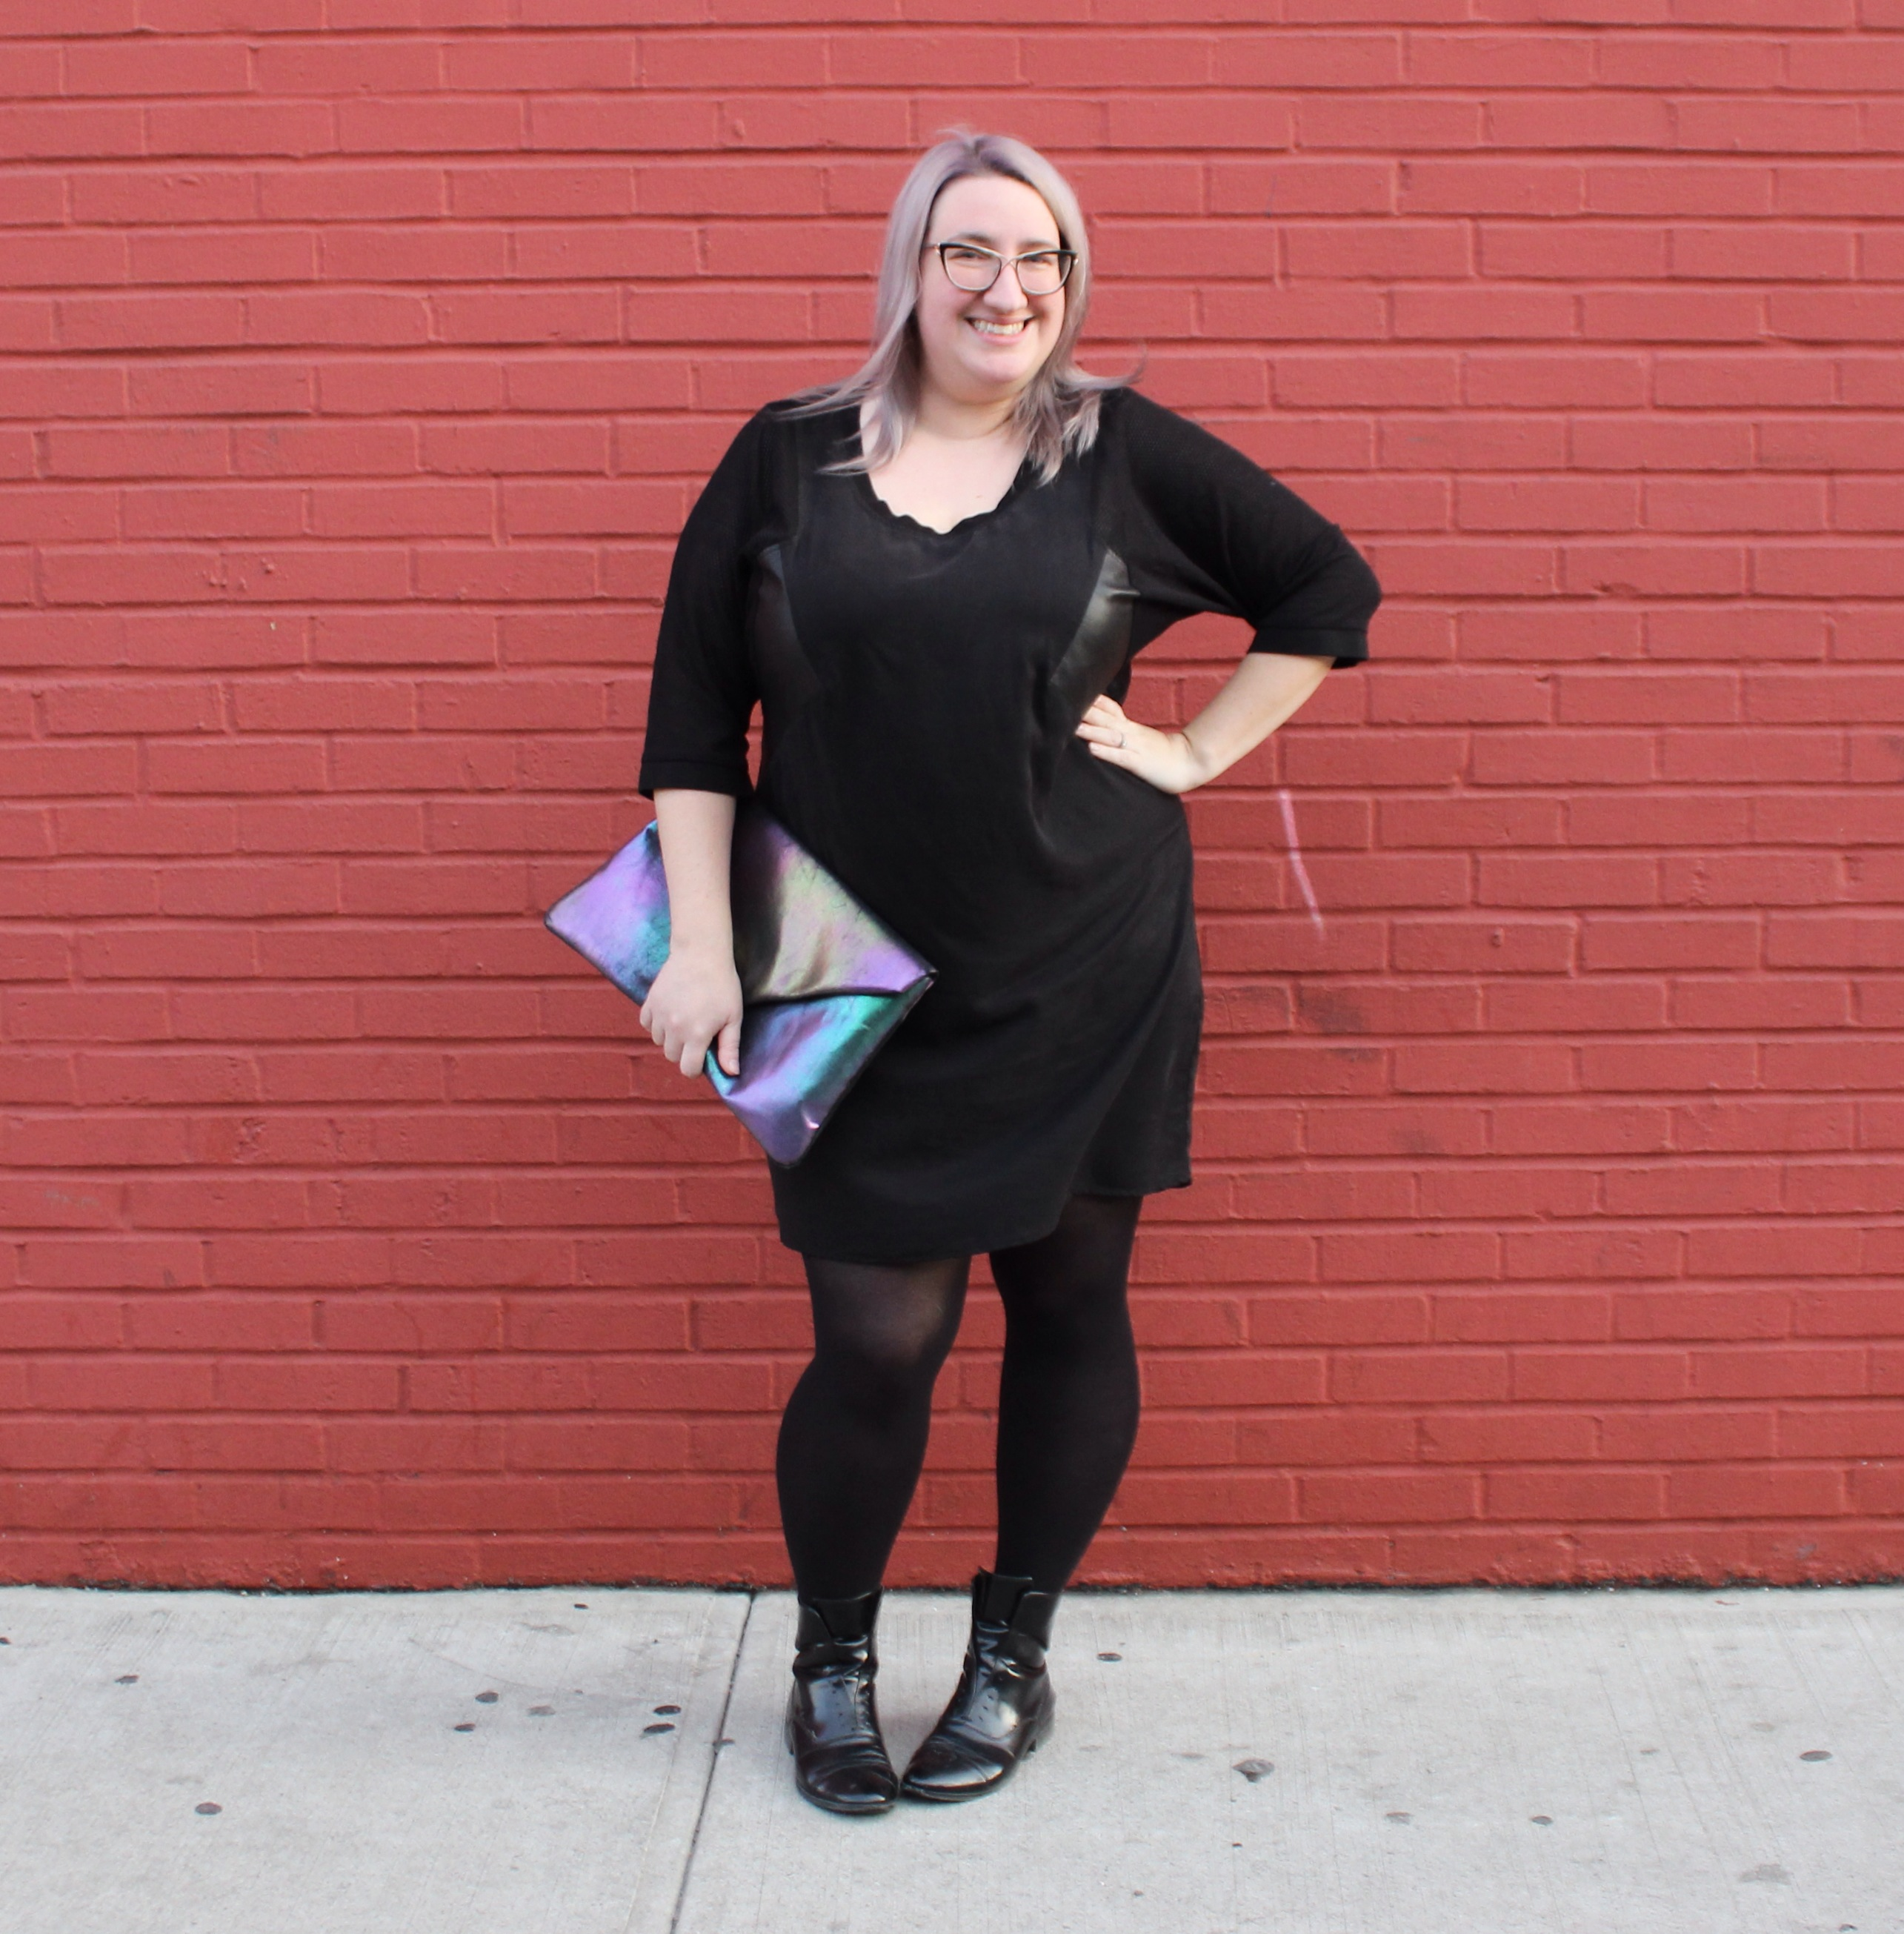 OOTD: A Sack Dress With Shape